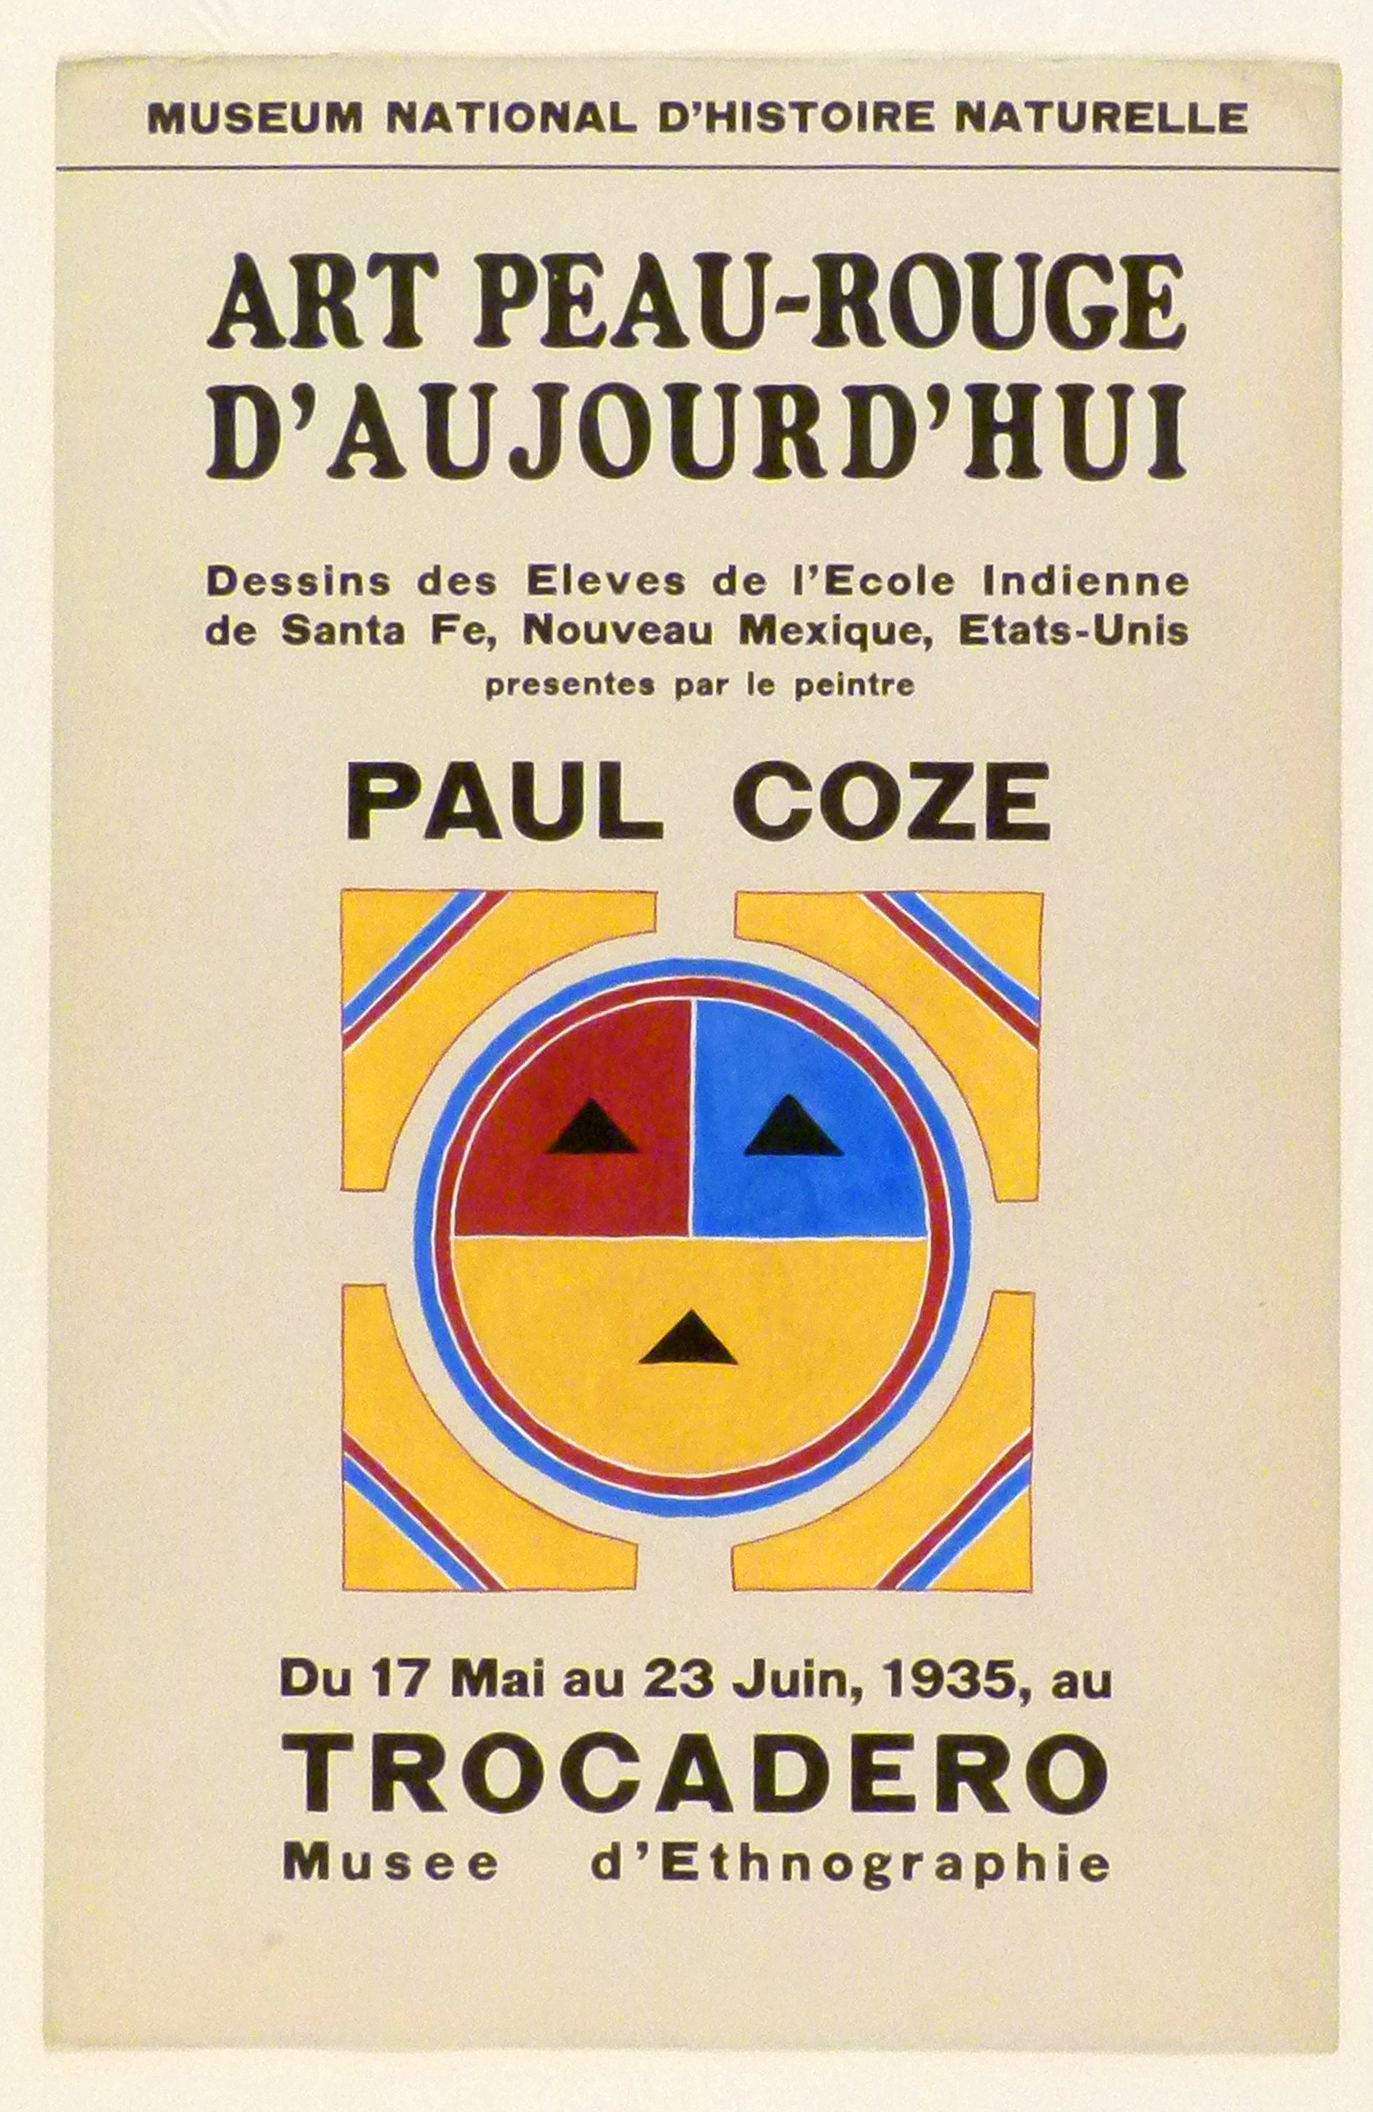 Art Exhibition Poster with painting of circle in red, yellow, and blue with a schematic face, nested inside four triangular shapes that form a square.